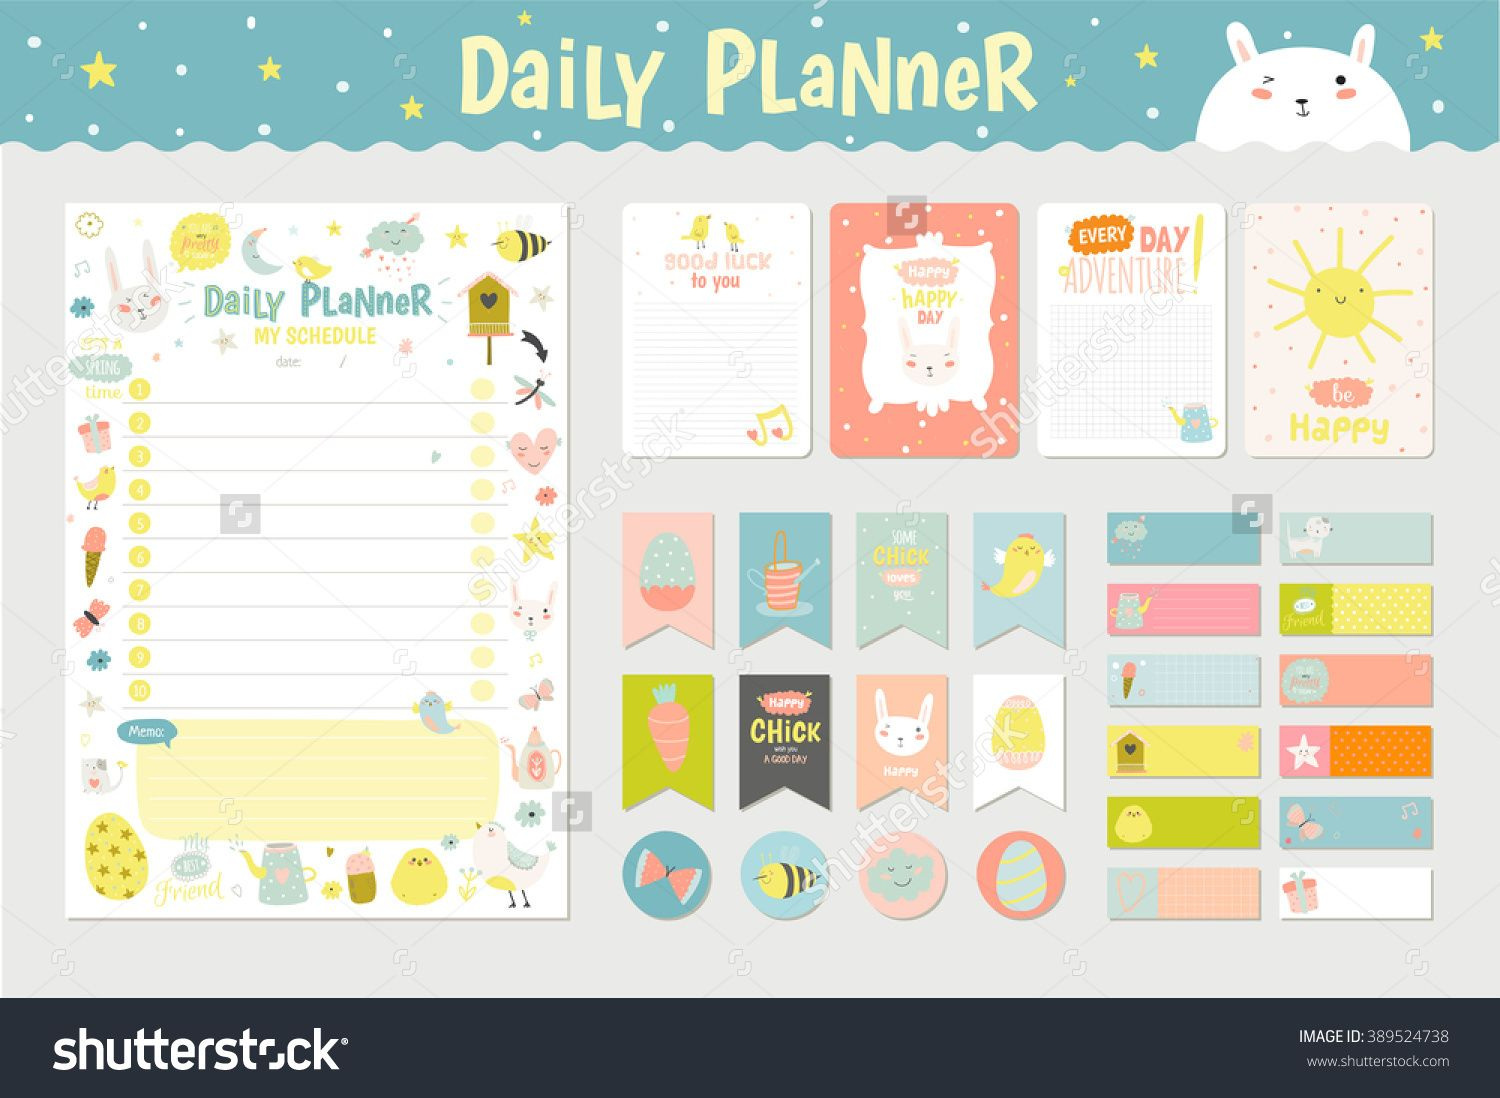 Pin By Julia On Daily Planner